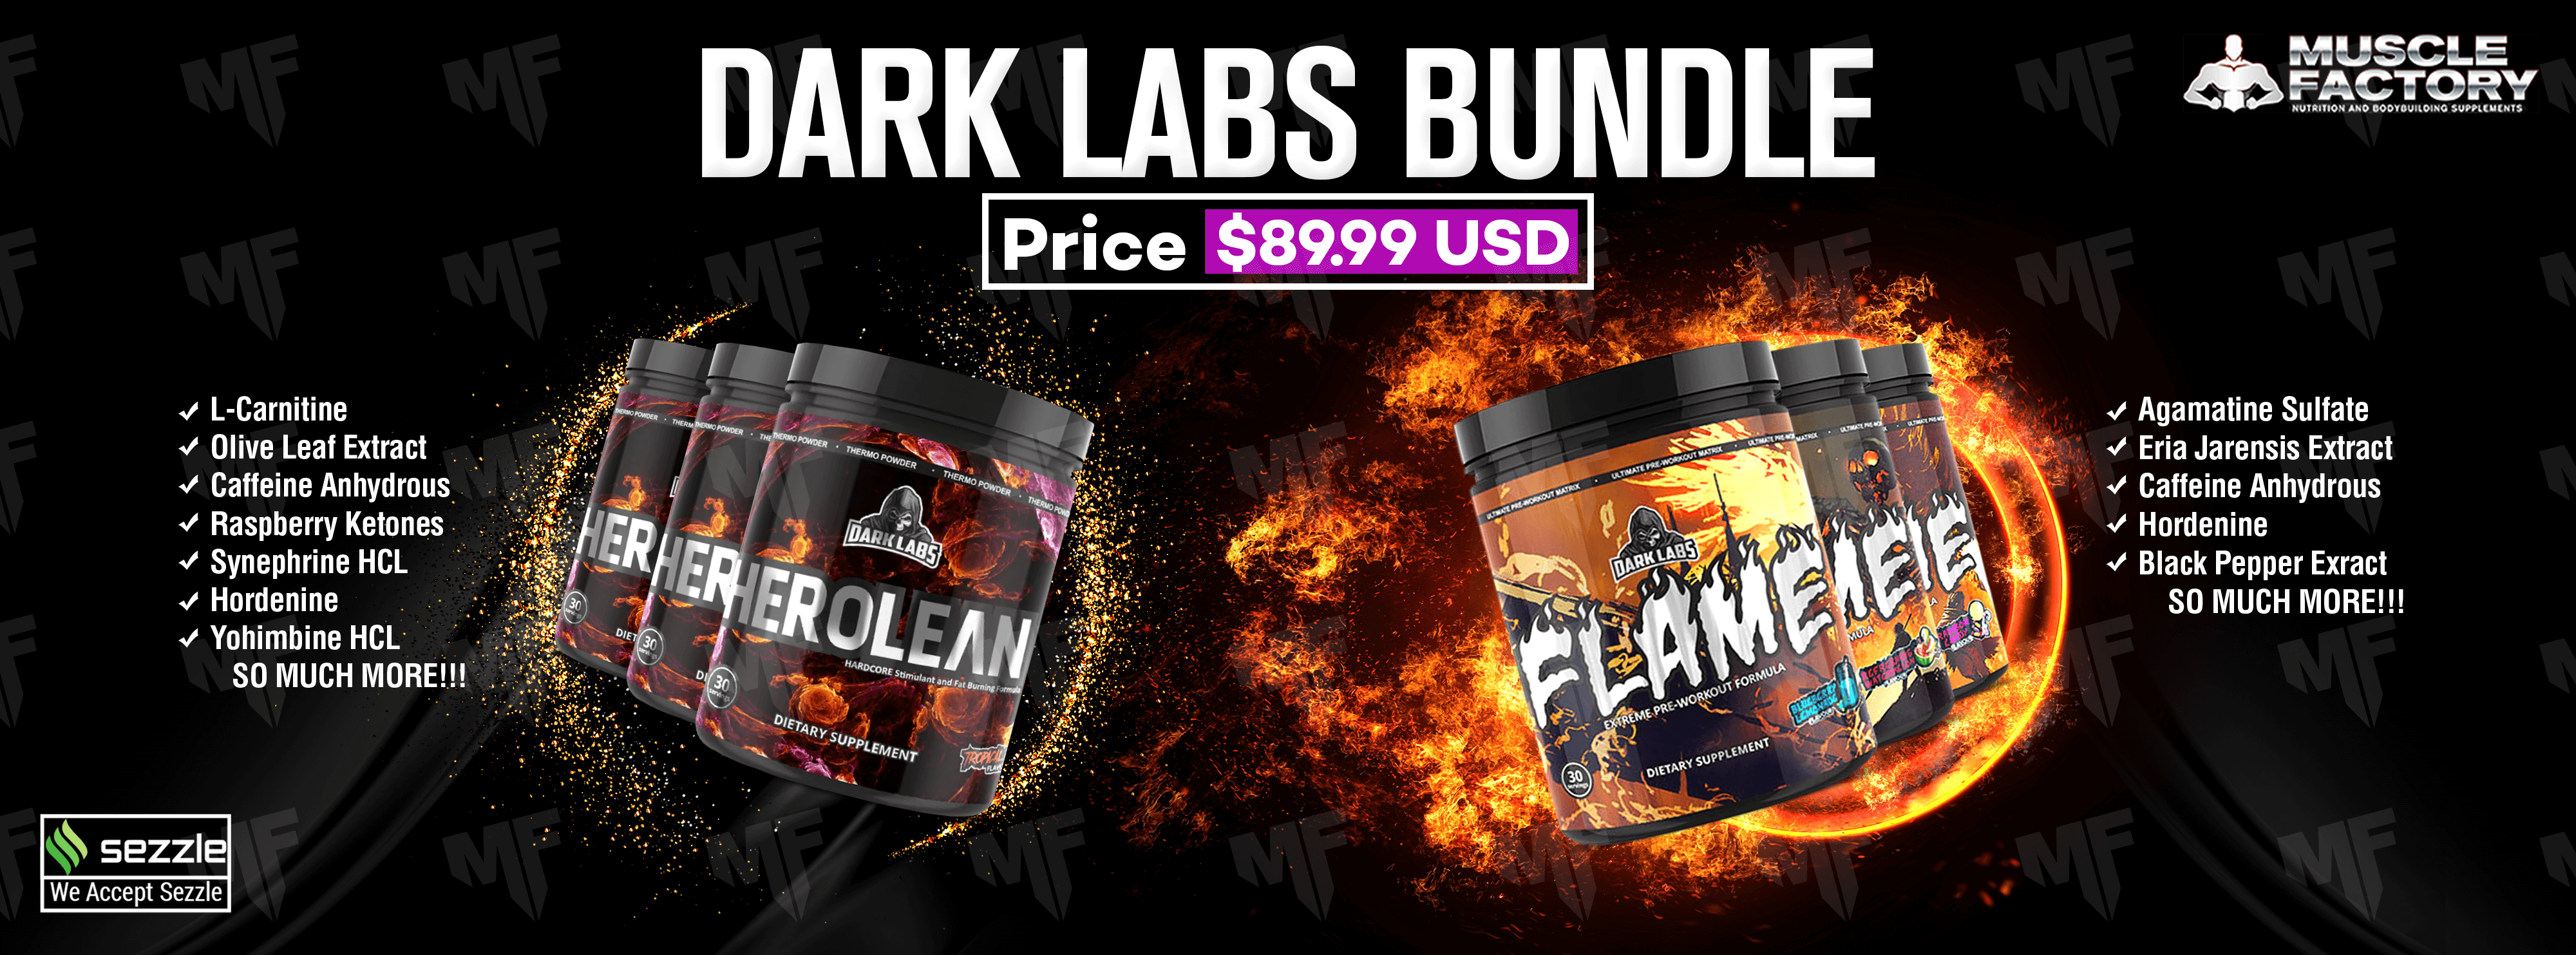 MFSC Dark Labs Bundle Banner